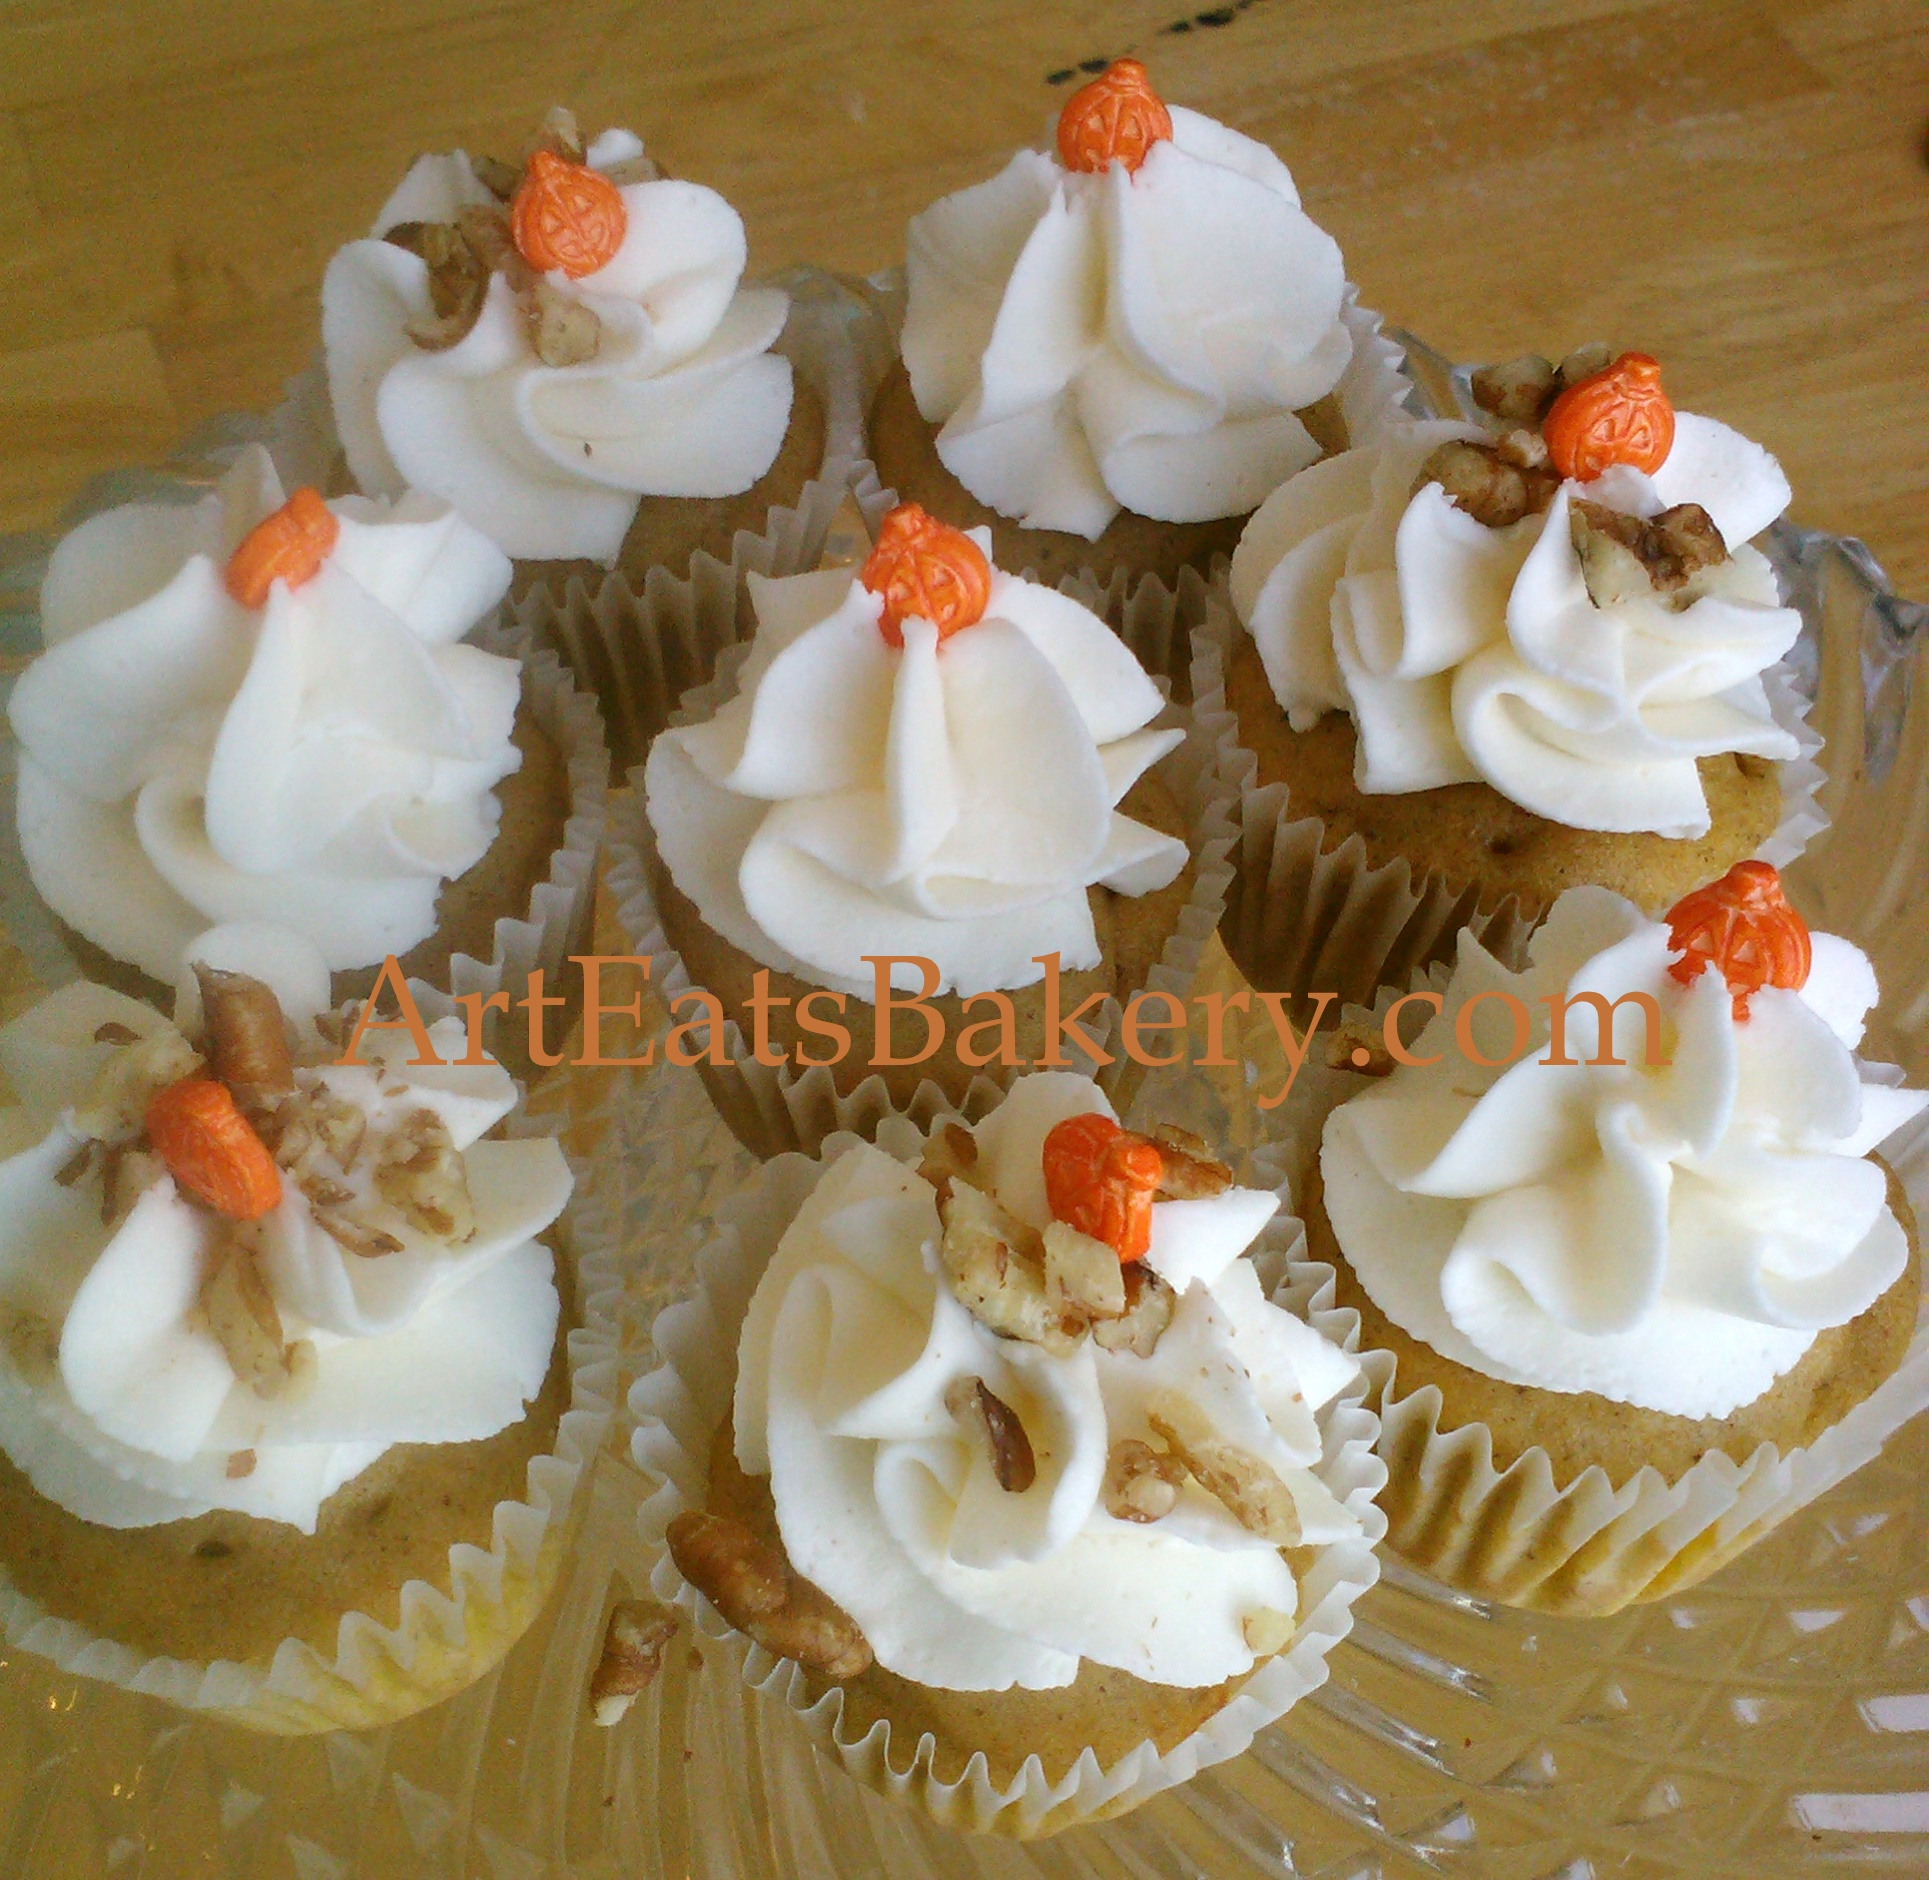 Pumpkin spice cupcakes with cream cheese icing and pecans.jpg